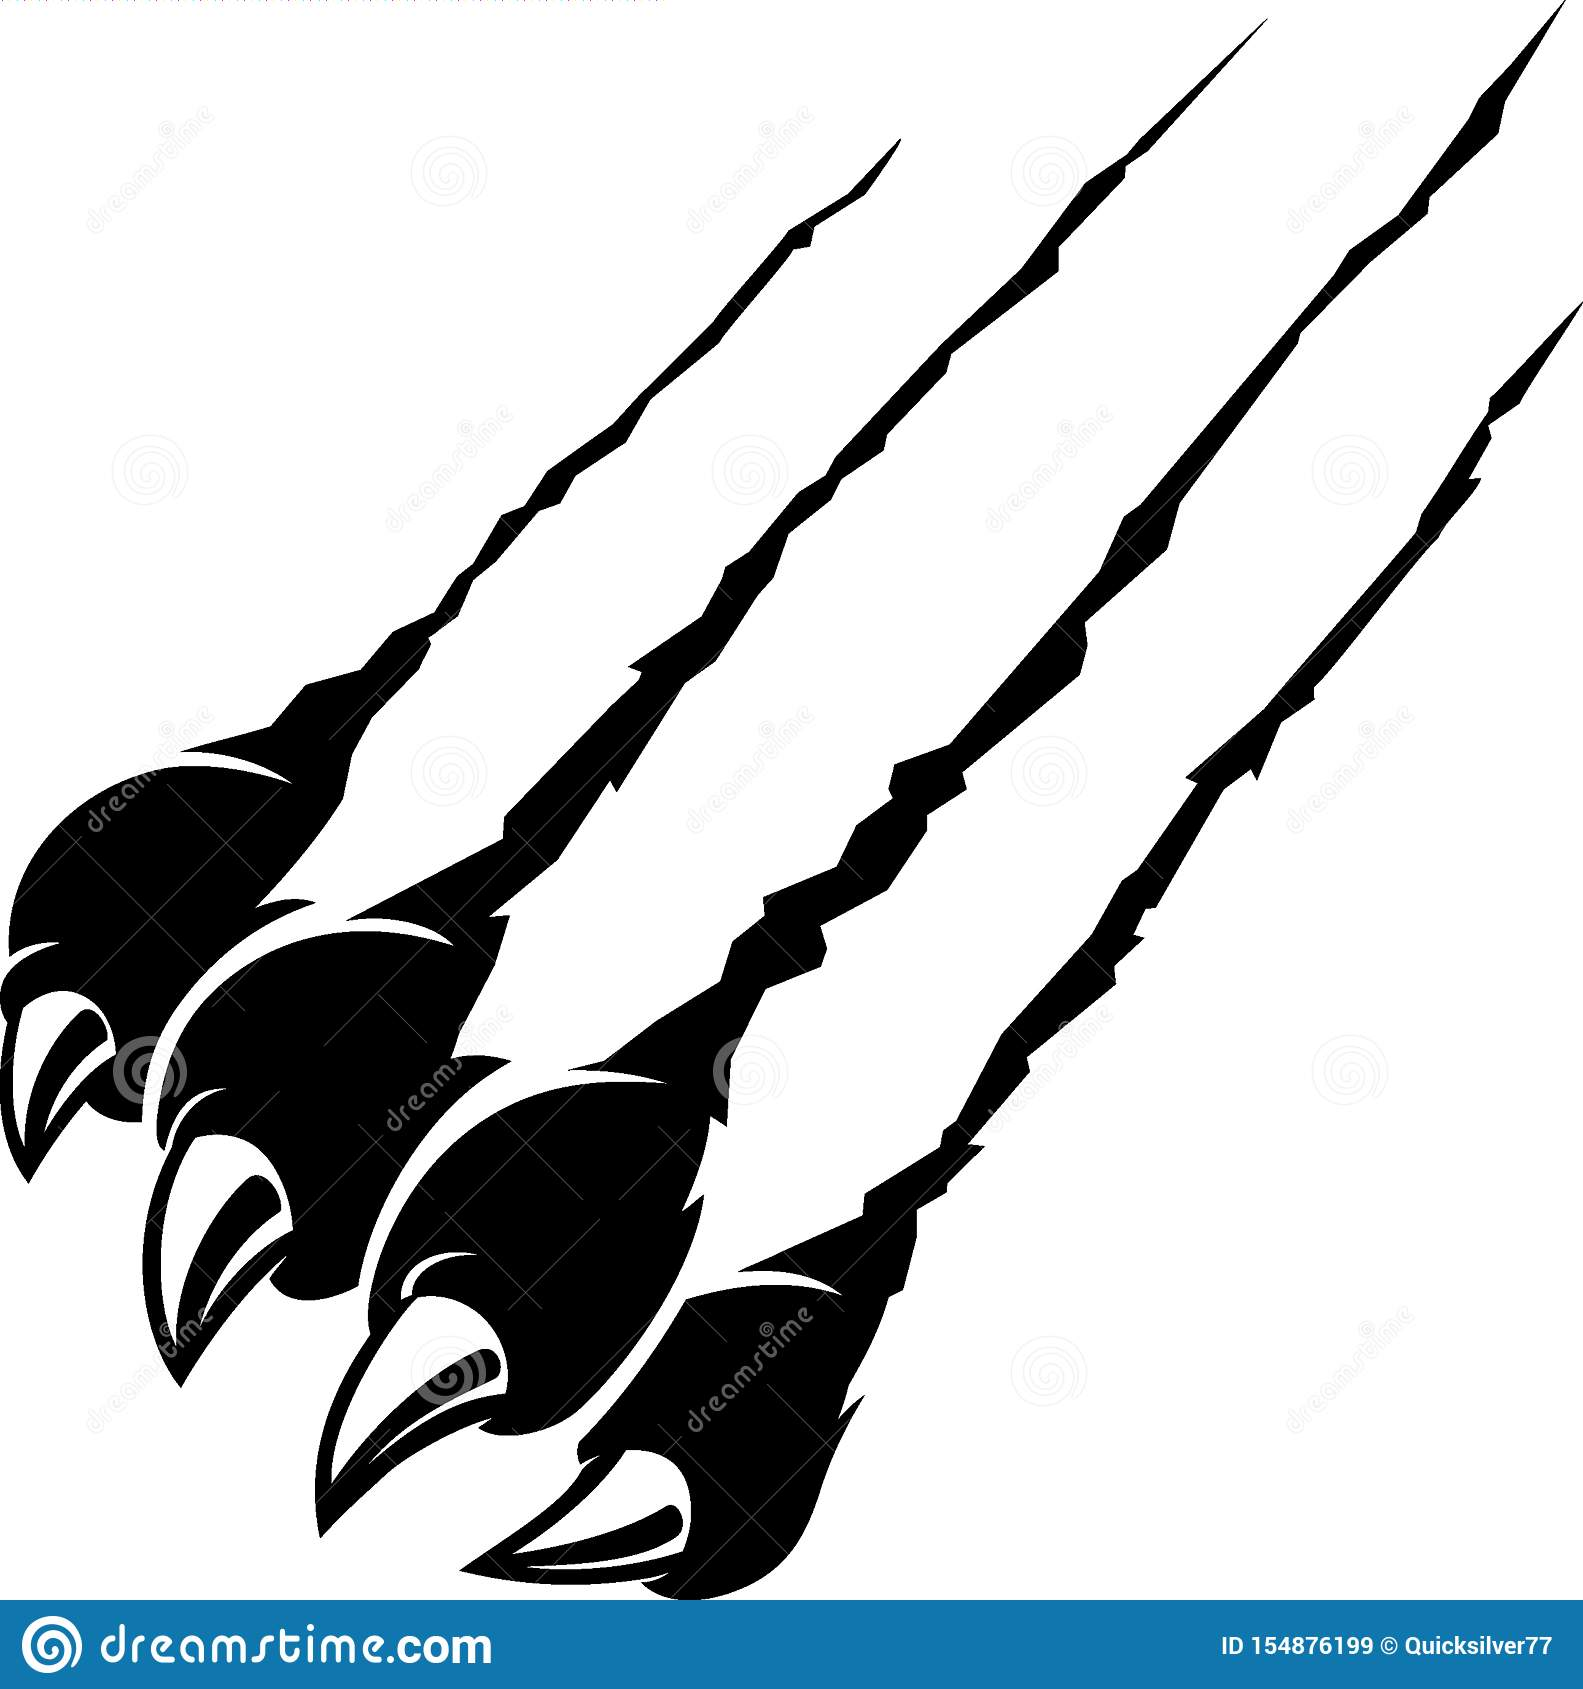 Rip Claw Black Panther Stock Vector Illustration Of Ripping 154876199